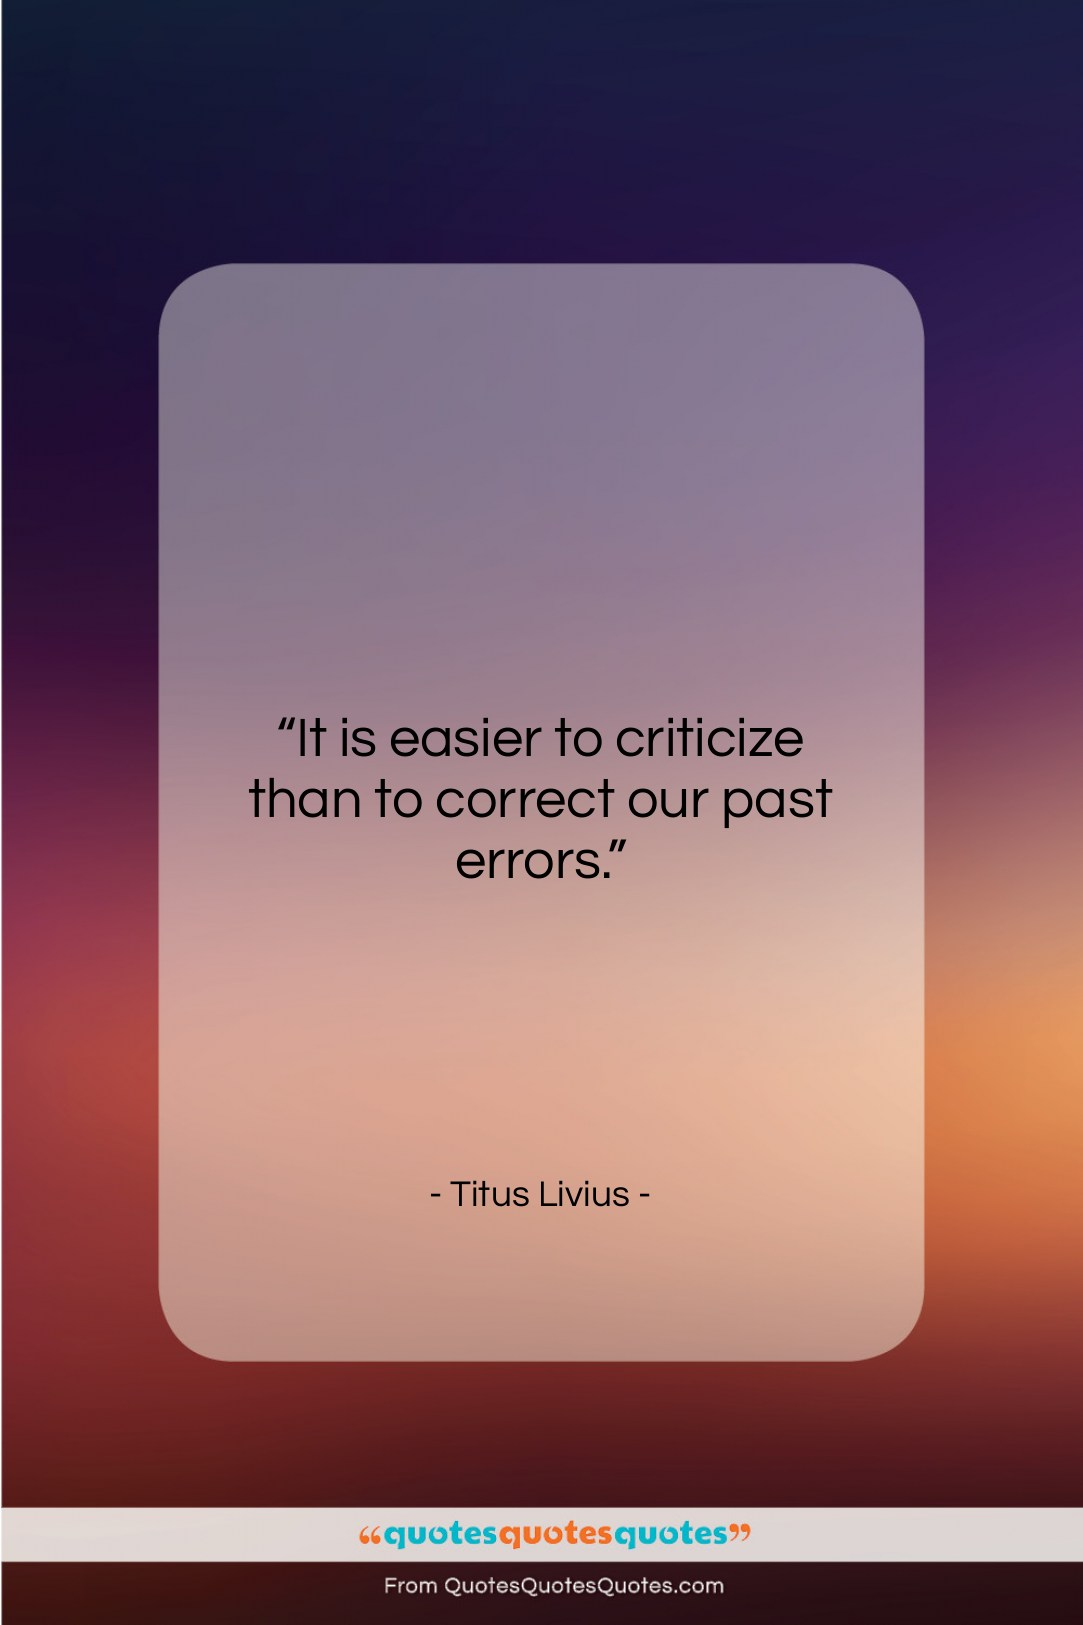 """Titus Livius quote: """"It is easier to criticize than to…""""- at QuotesQuotesQuotes.com"""